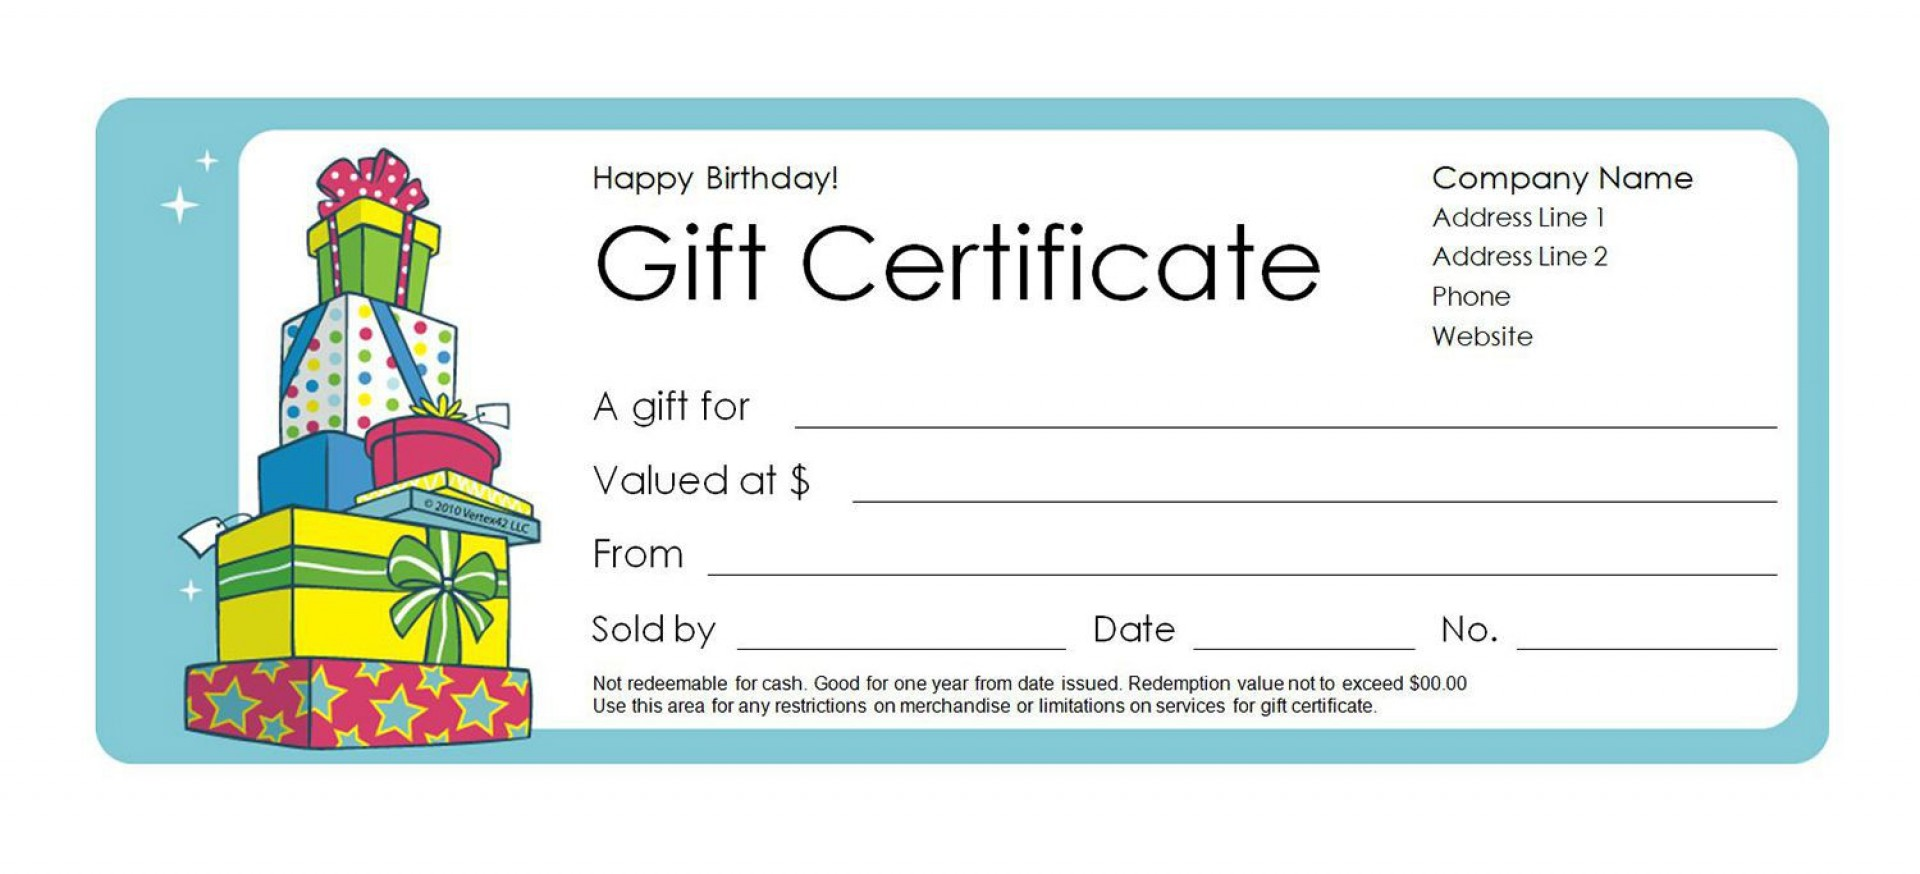 003 Fantastic Free Template For Gift Certificate Inspiration  Printable Birthday Mac In Word1920